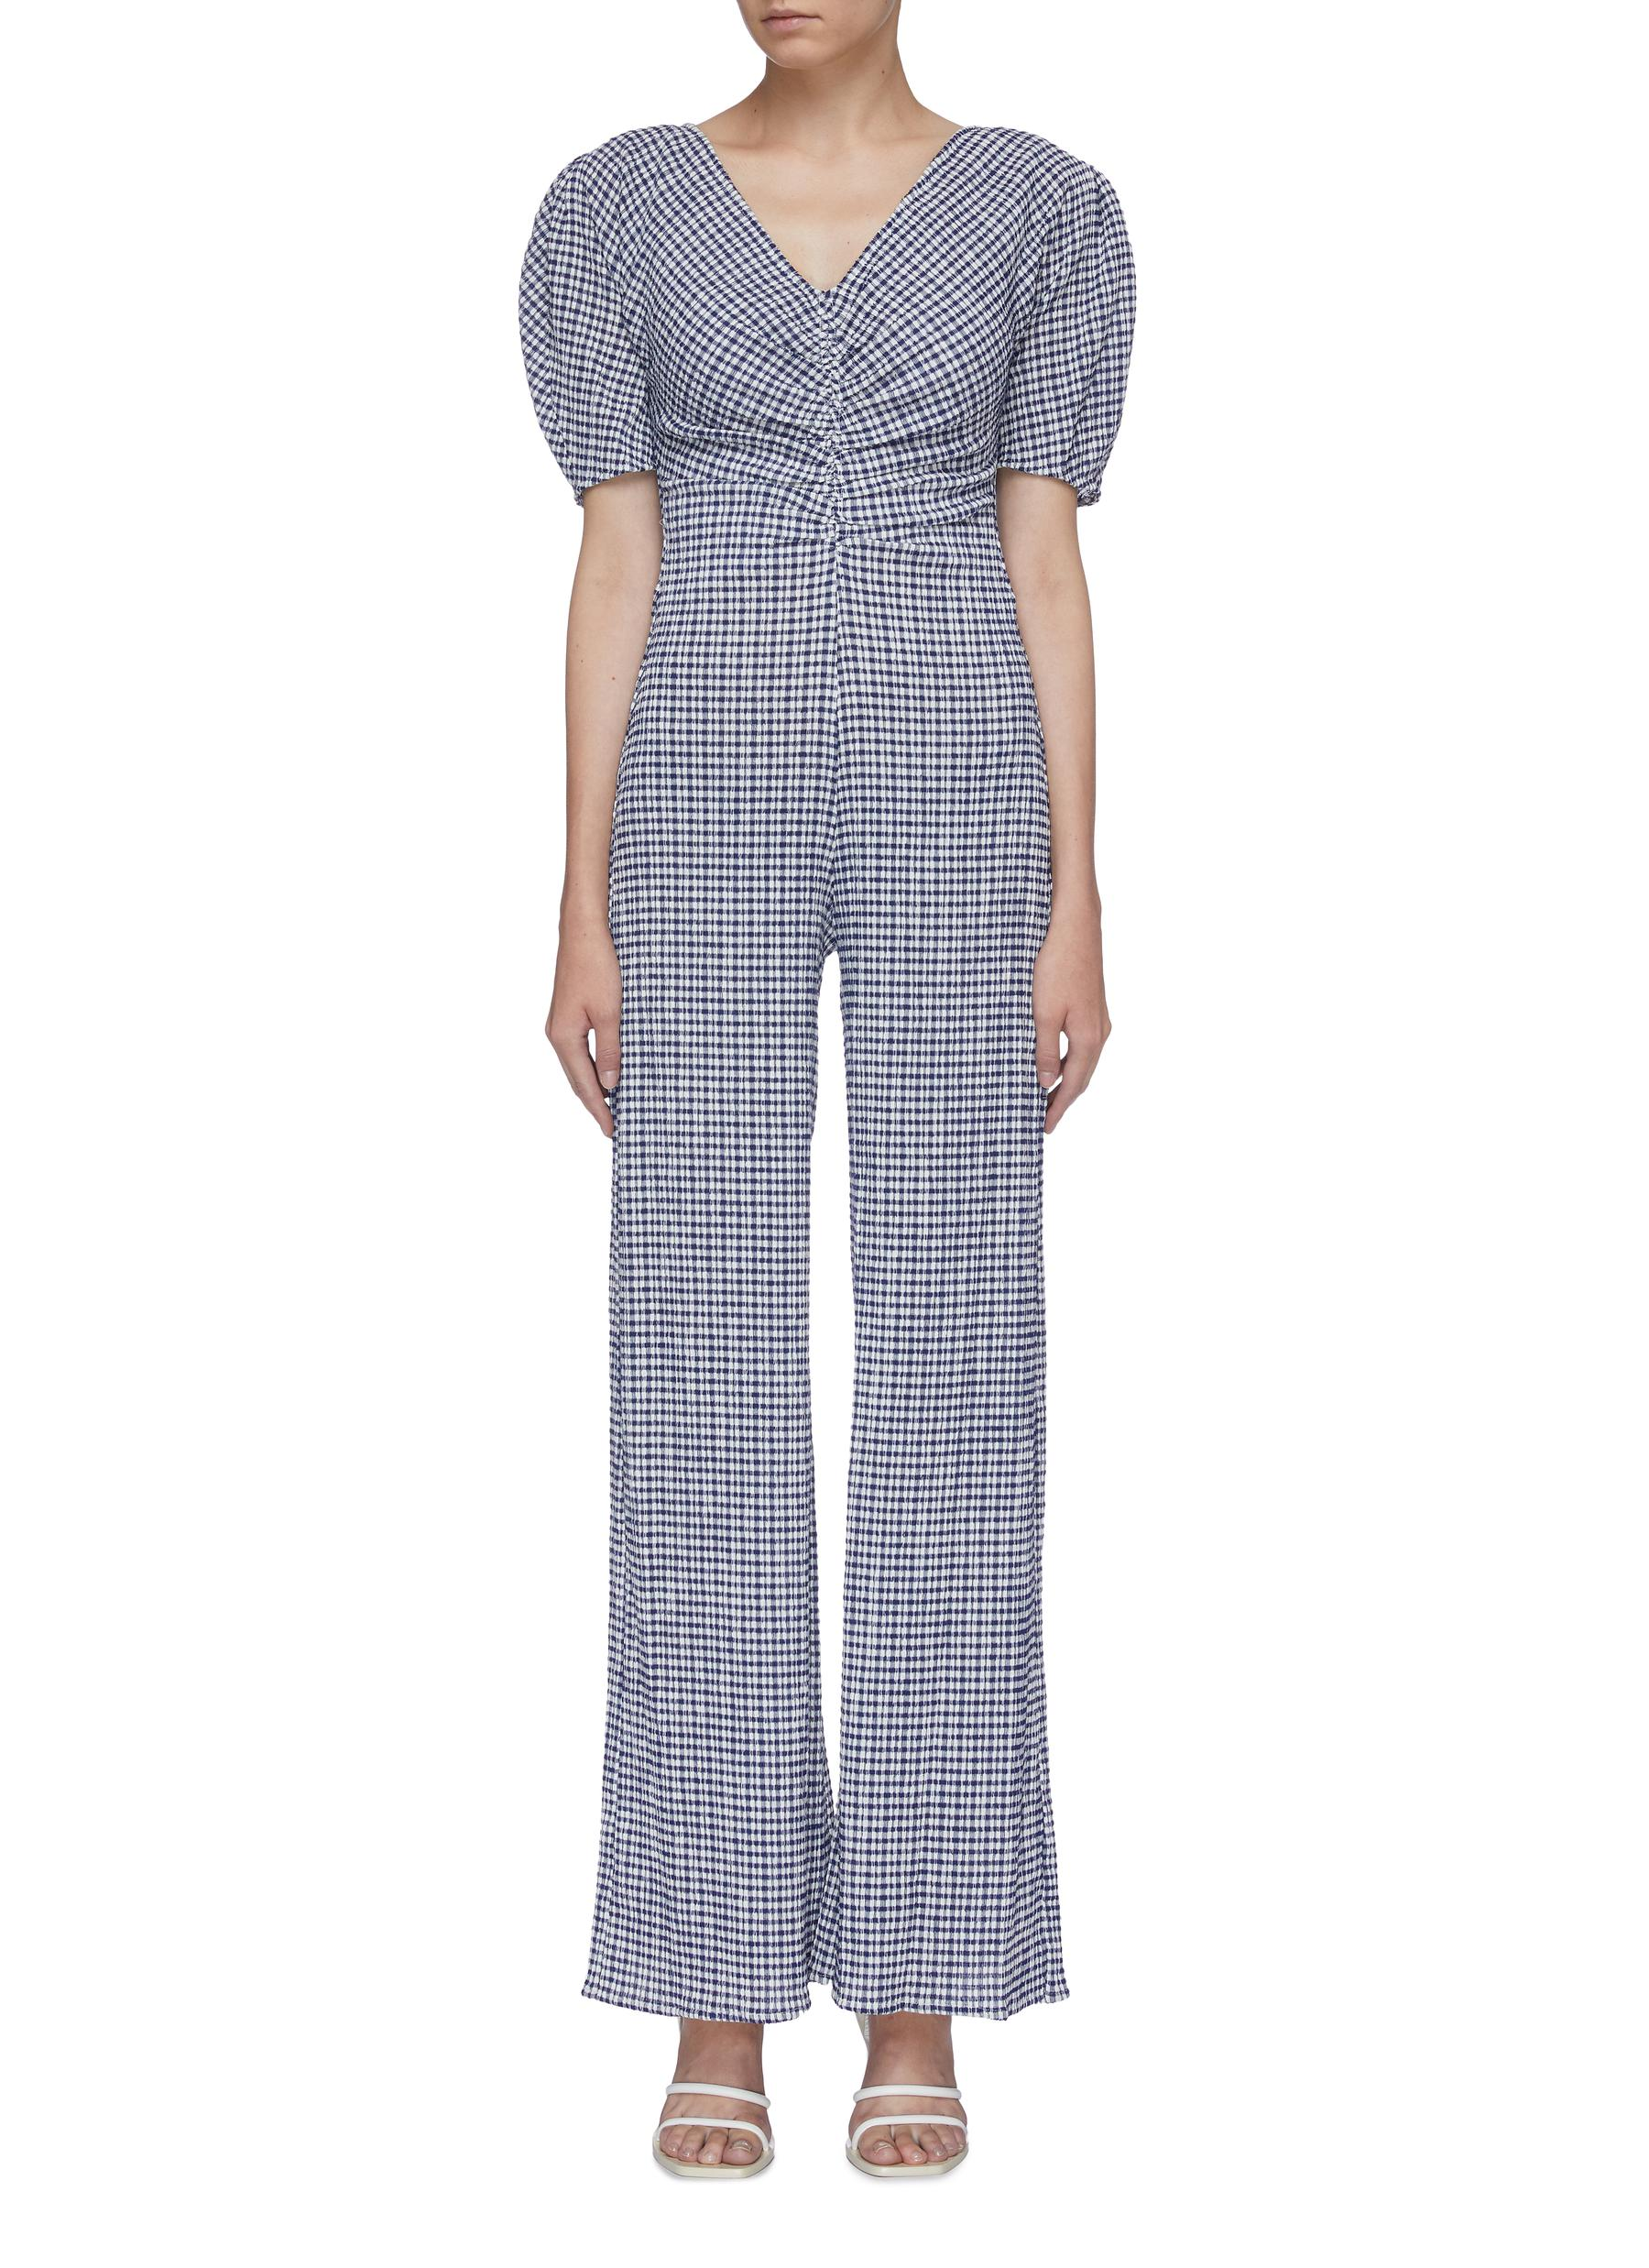 Fraise puff sleeve ruched gingham check wide leg jumpsuit by Staud